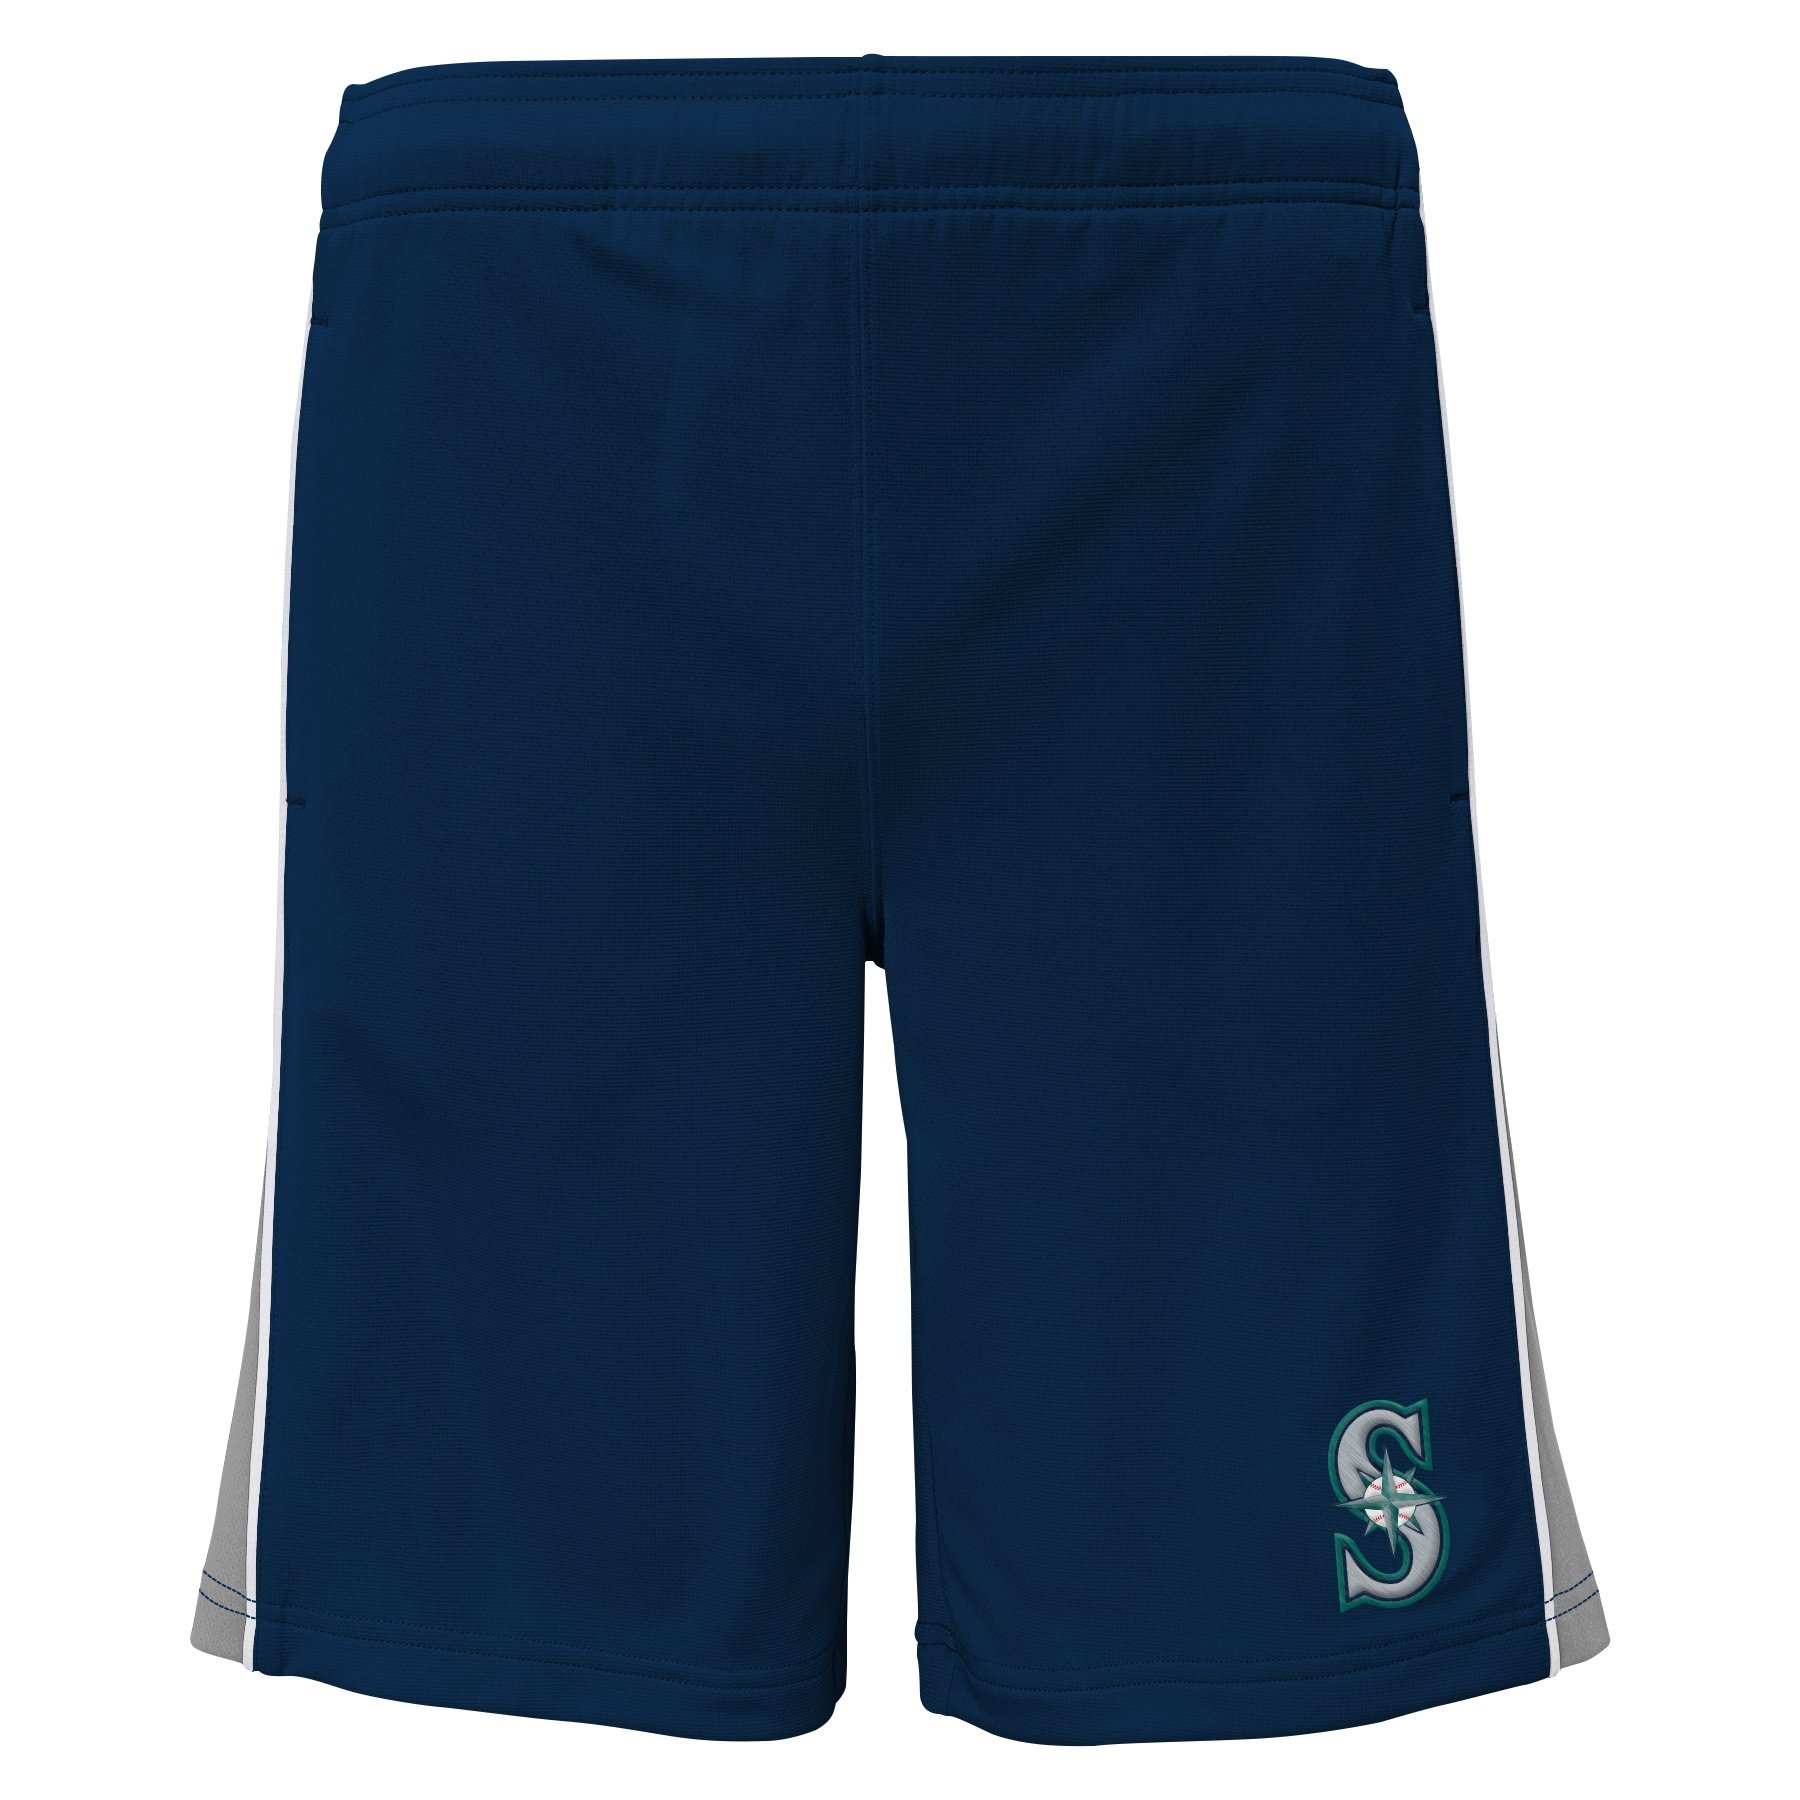 Outerstuff MLB Seattle Mariners Youth Boys 8-20 Baseball Classice Short-XL (18), Athletic Navy